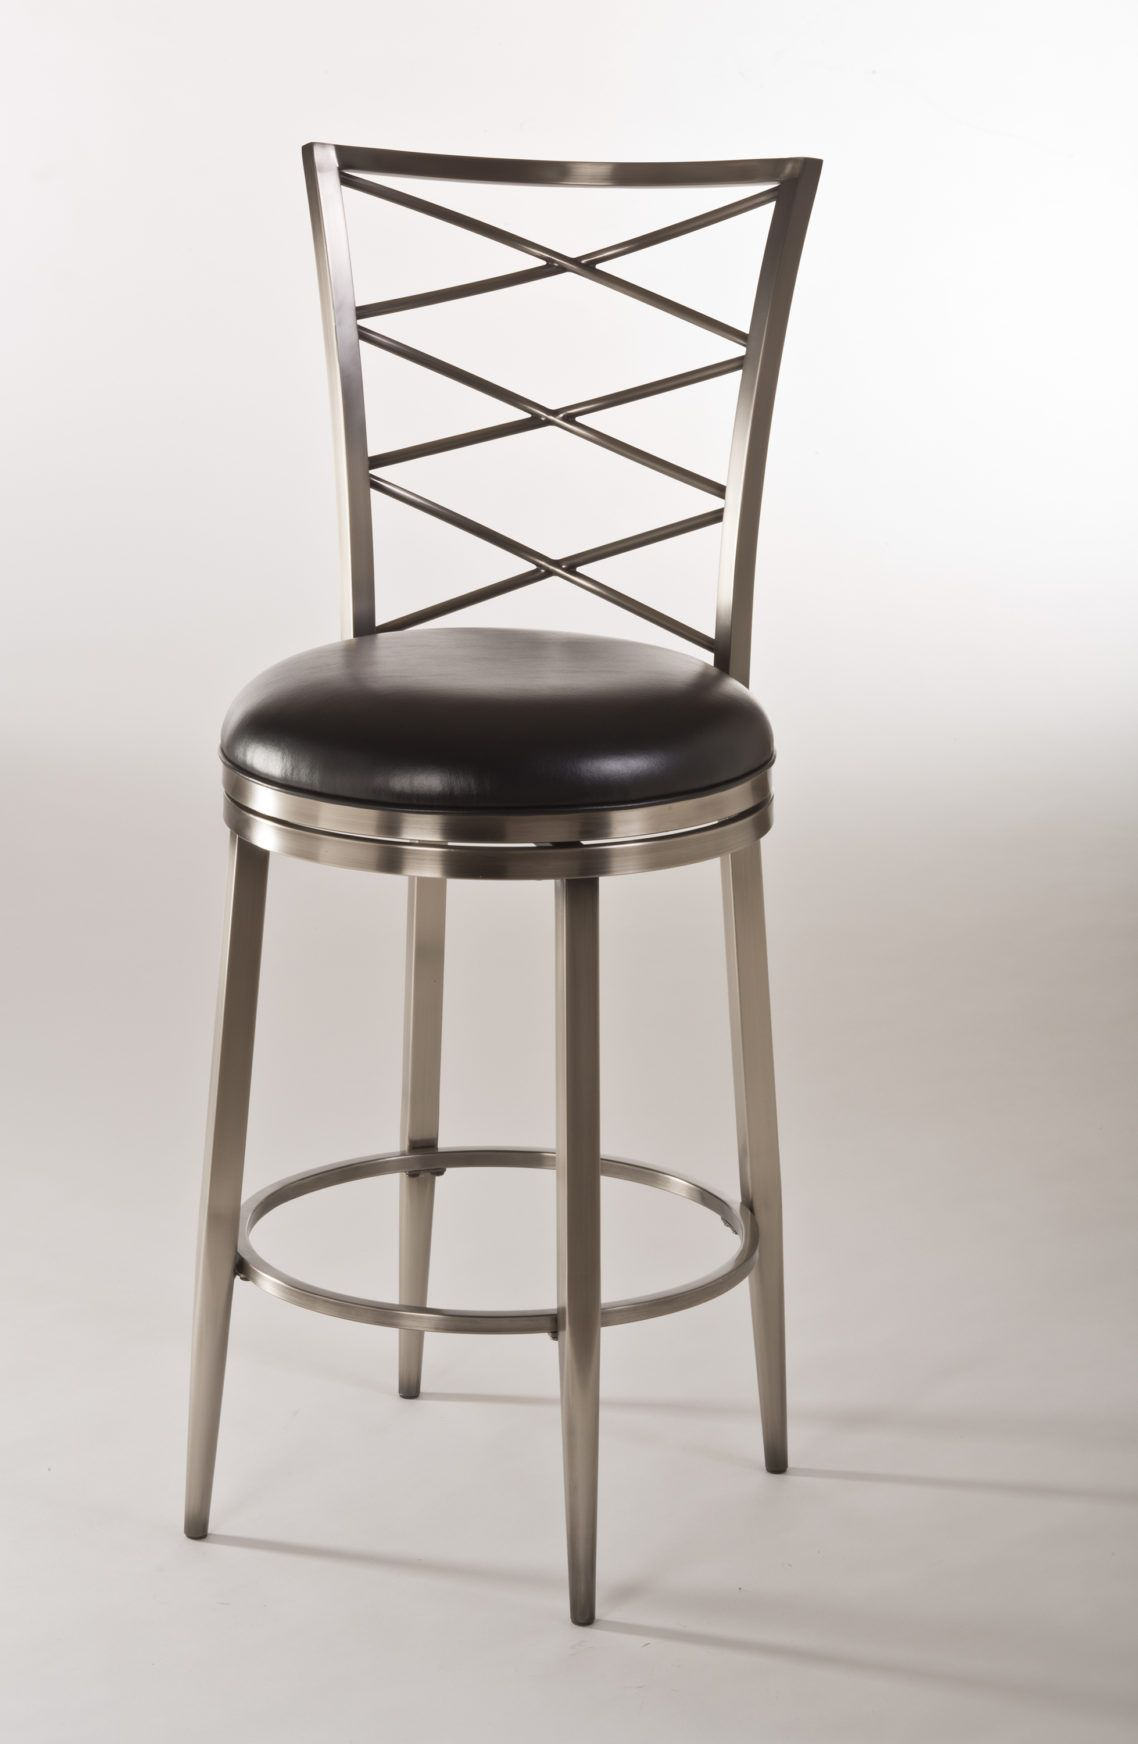 agreeable furniture iron bar stool design with stainless steel bar